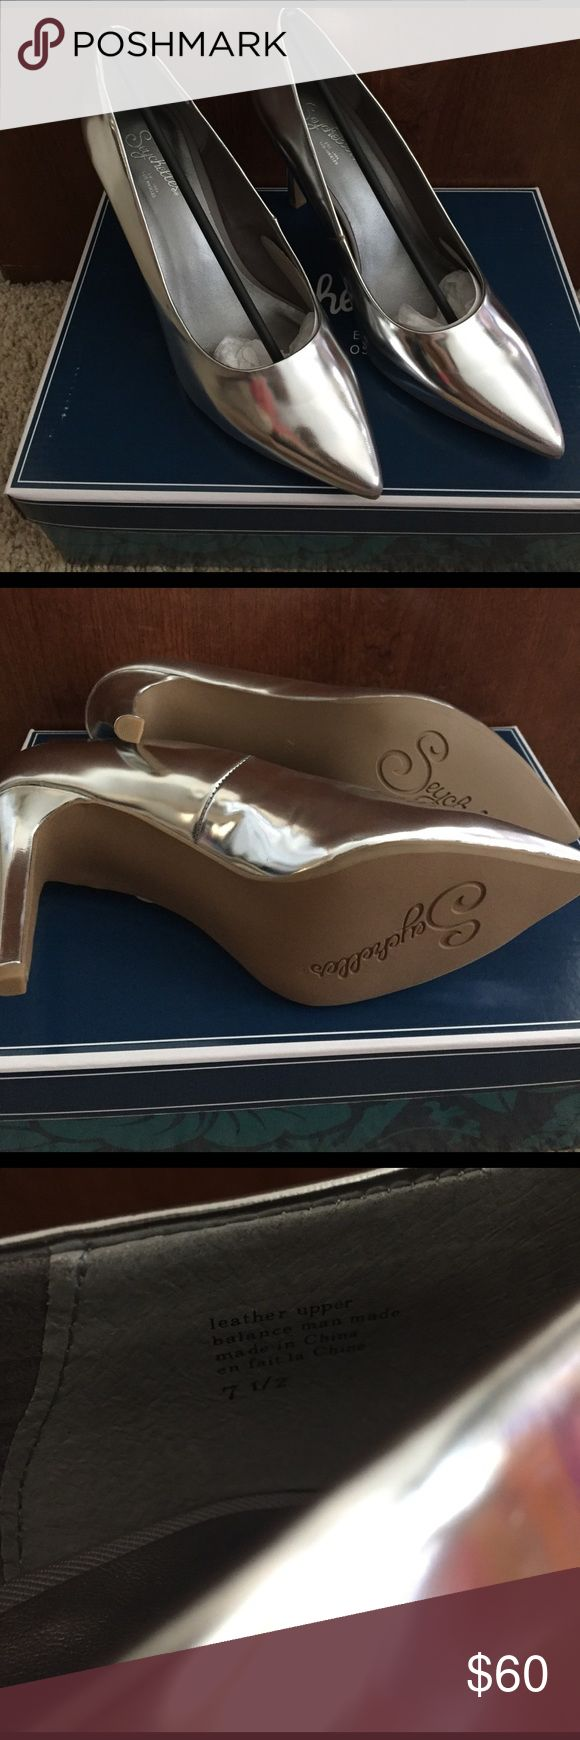 Seychelles Frequency pumps, Size 7.5 Brand new Seychelles Frequency pumps in Silver Metallic. Never worn, includes all original packaging and extra heels (see picture). Small area near heel where silver appears to have rubbed off (see picture); were like that when purchased. Seychelles Shoes Heels